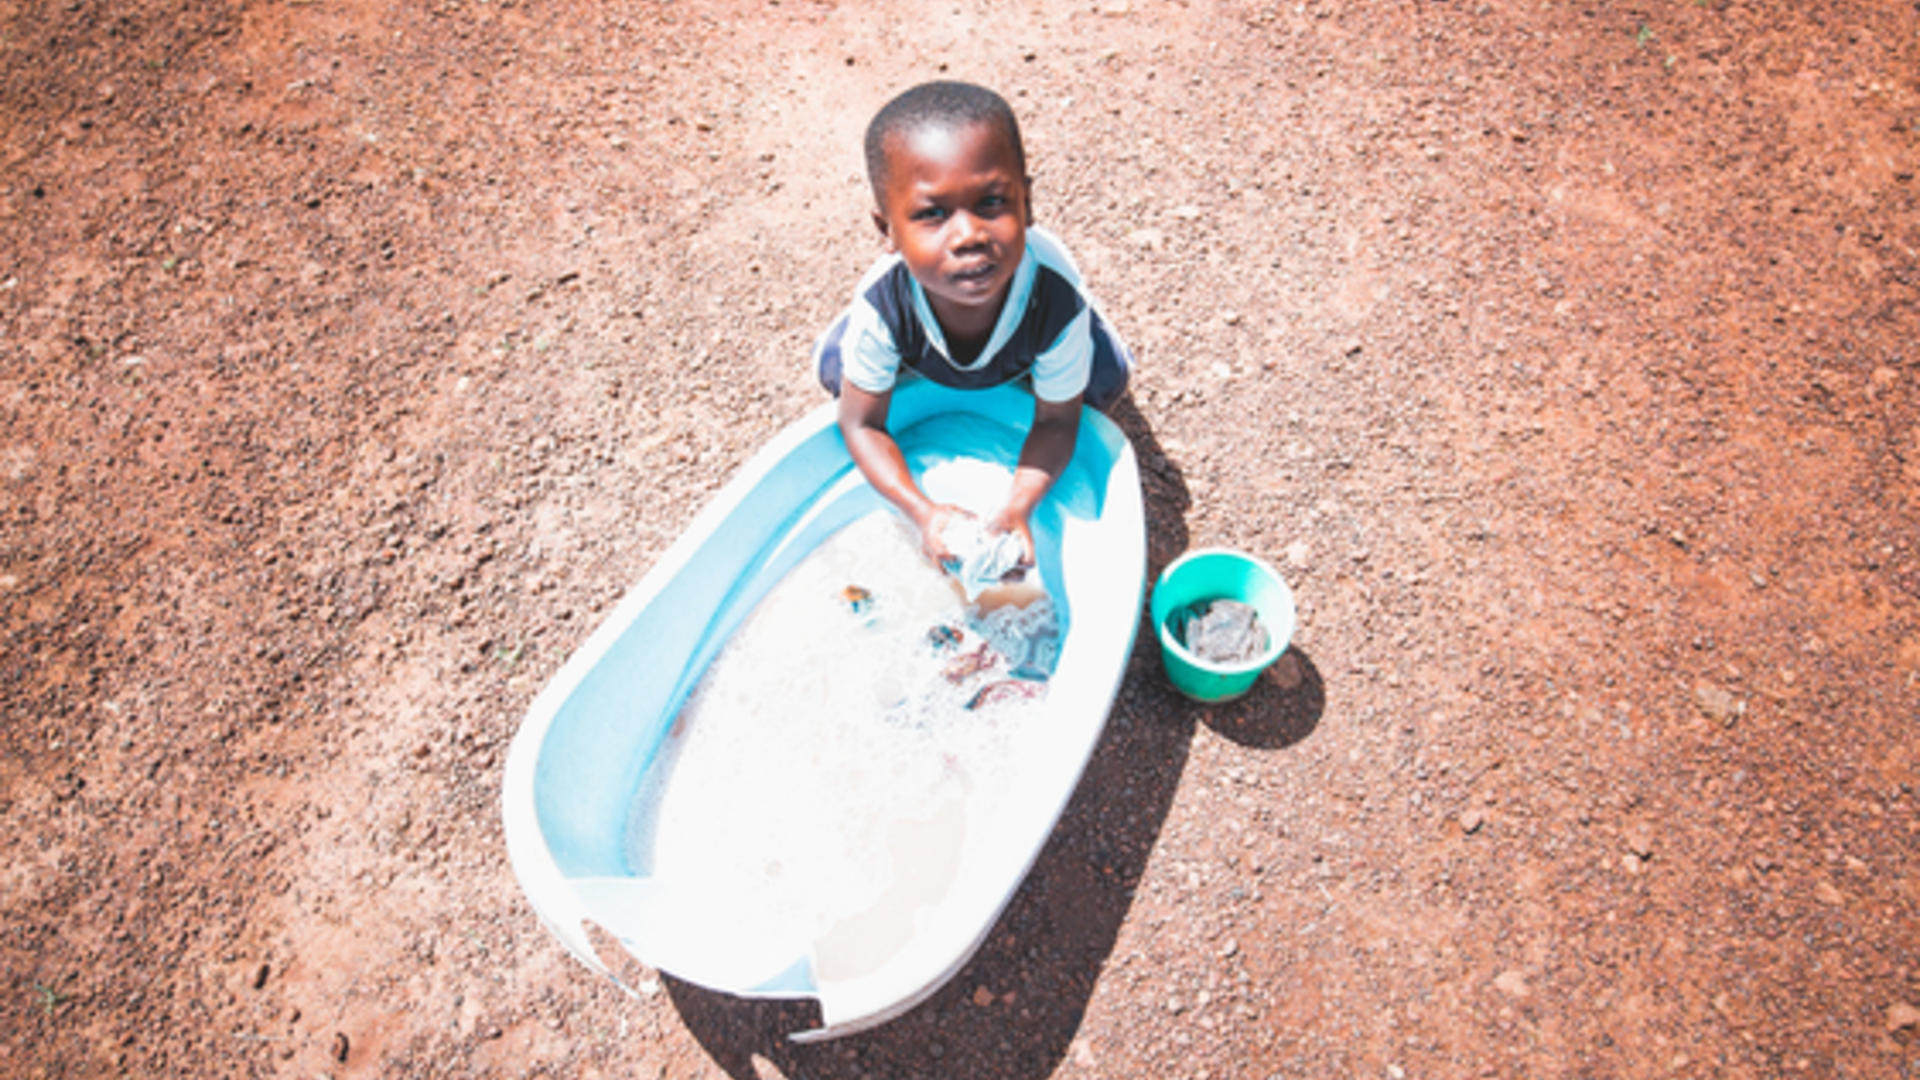 Young boy washes hands